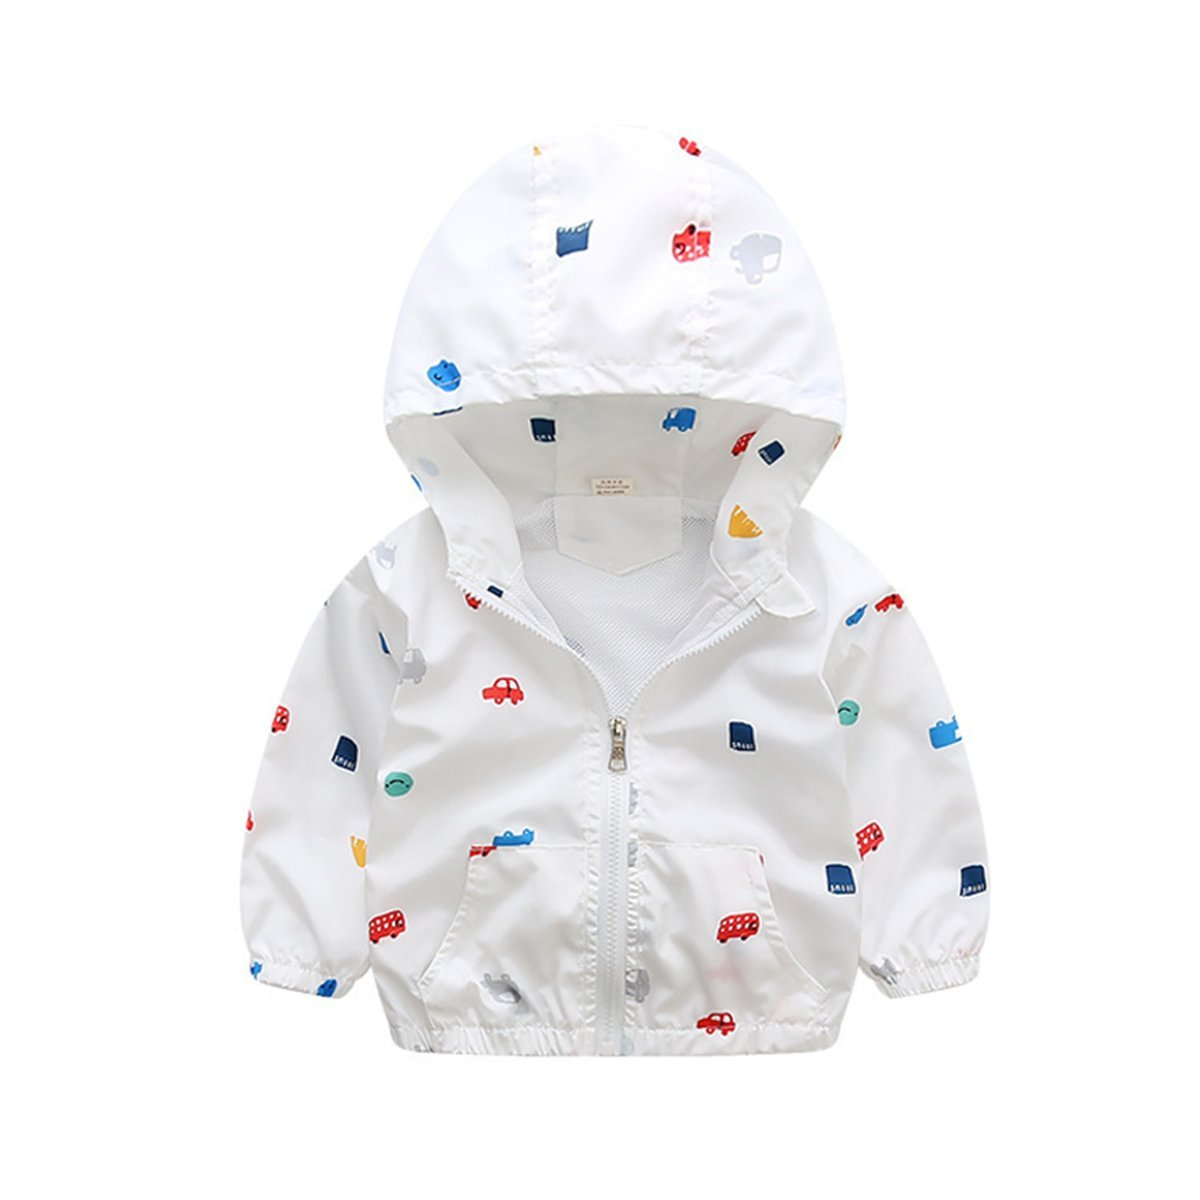 Foyeria Jacket Coat Outerwear Spring Print Cartoon Hooded Casual Water Resistance For Baby Girls Boys (White, 4T)